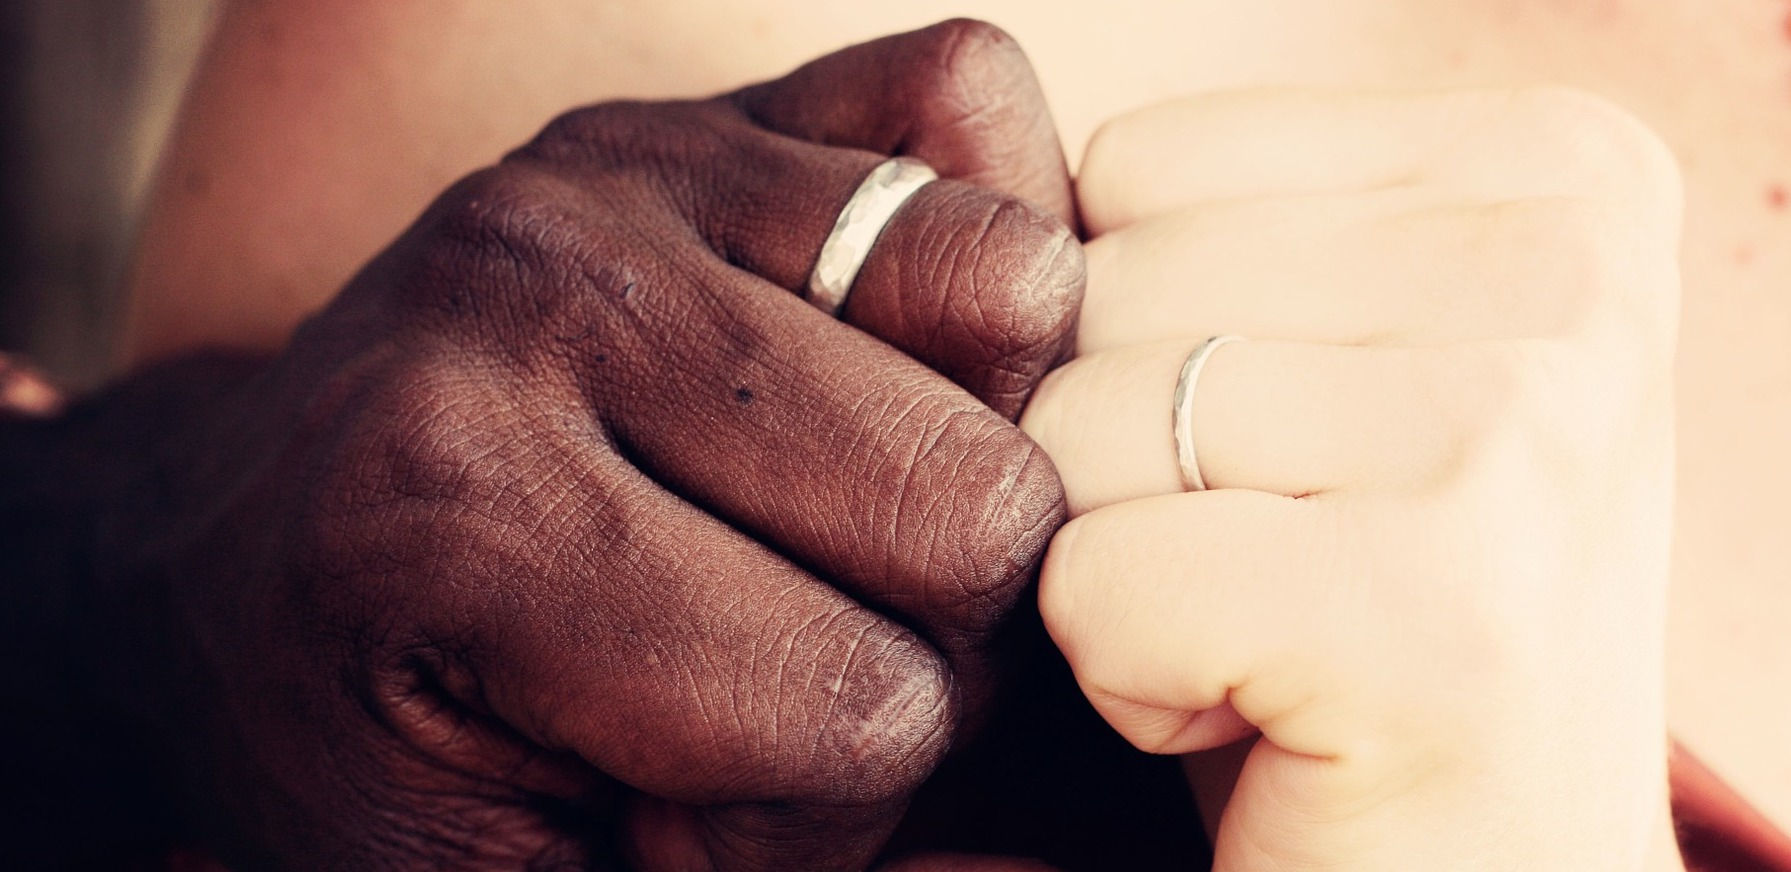 A Reflection On Interracial Dating